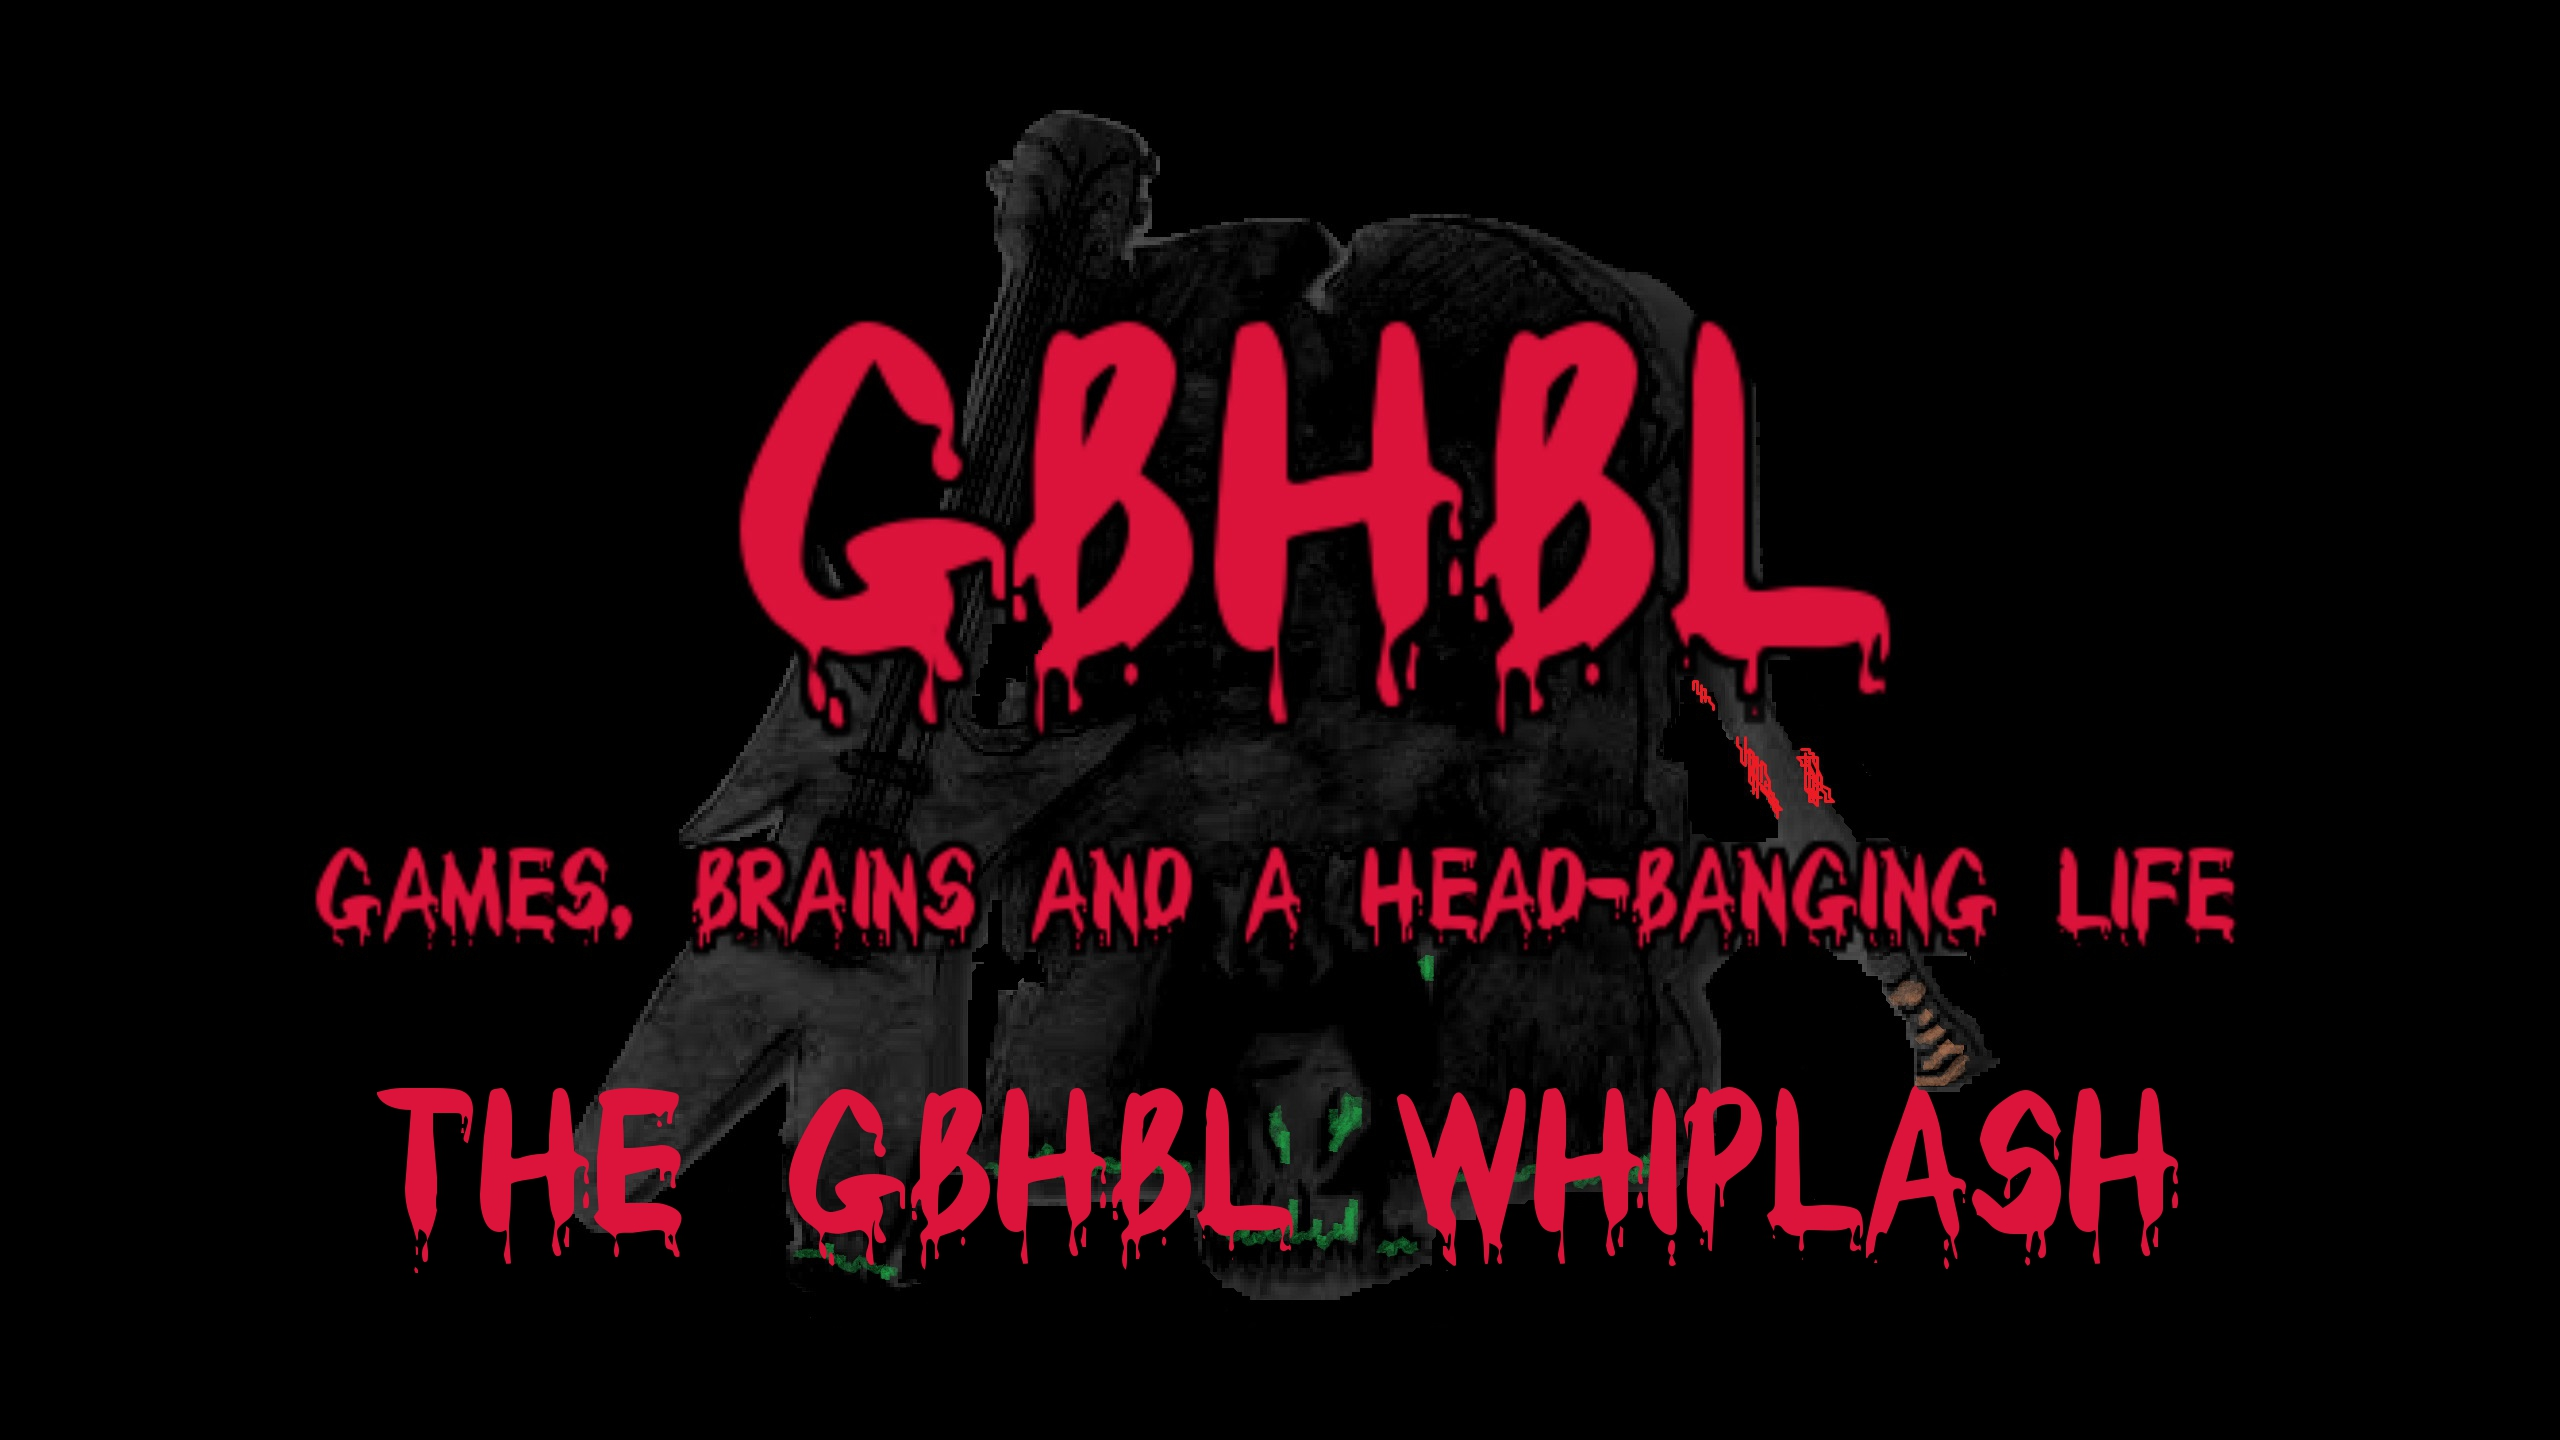 The GBHBL Whiplash